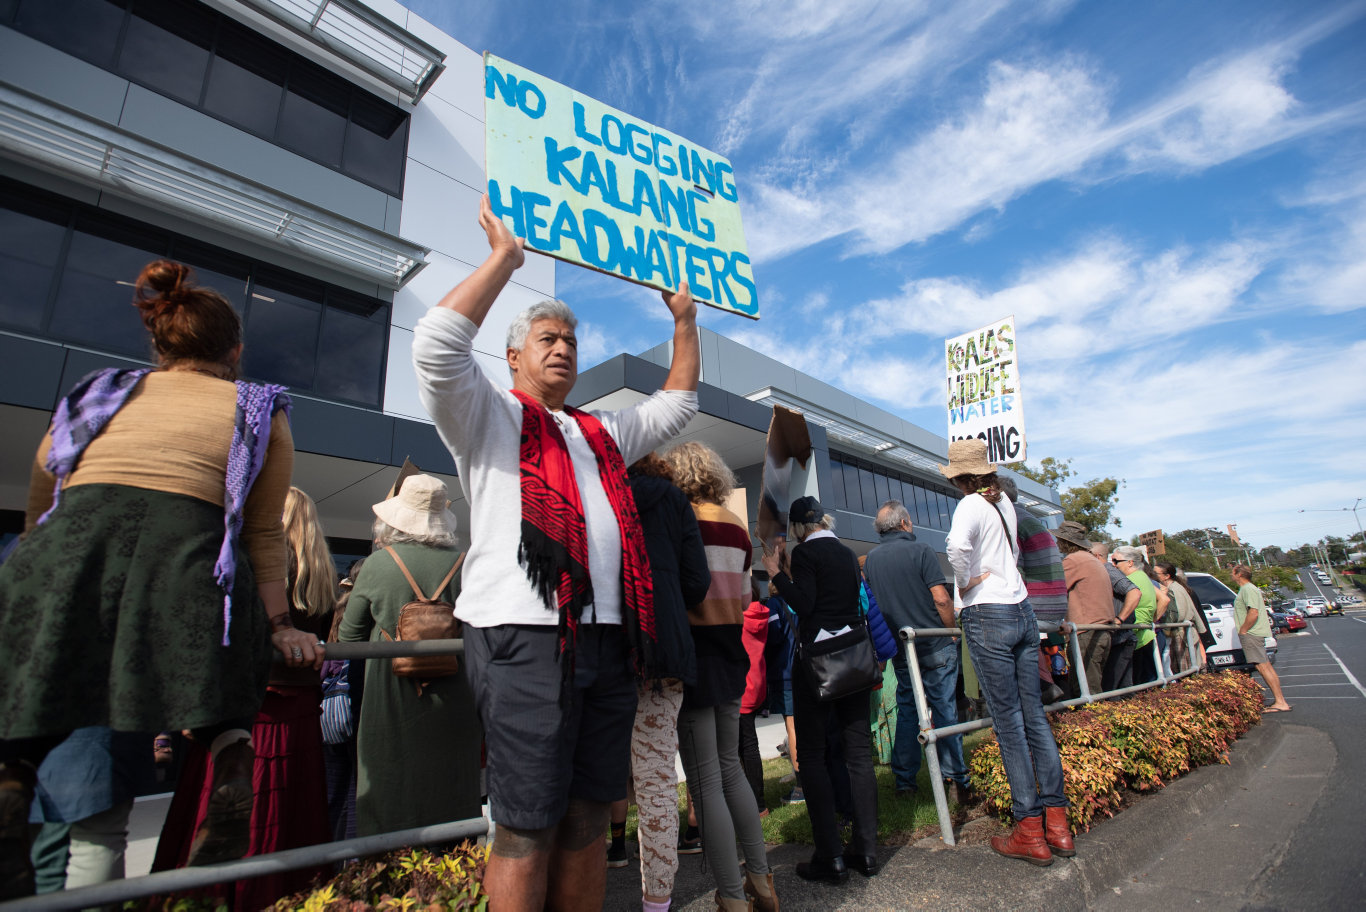 BIG IMPACT: The Right to Farm Bill is going to have a big affect on local protest groups.